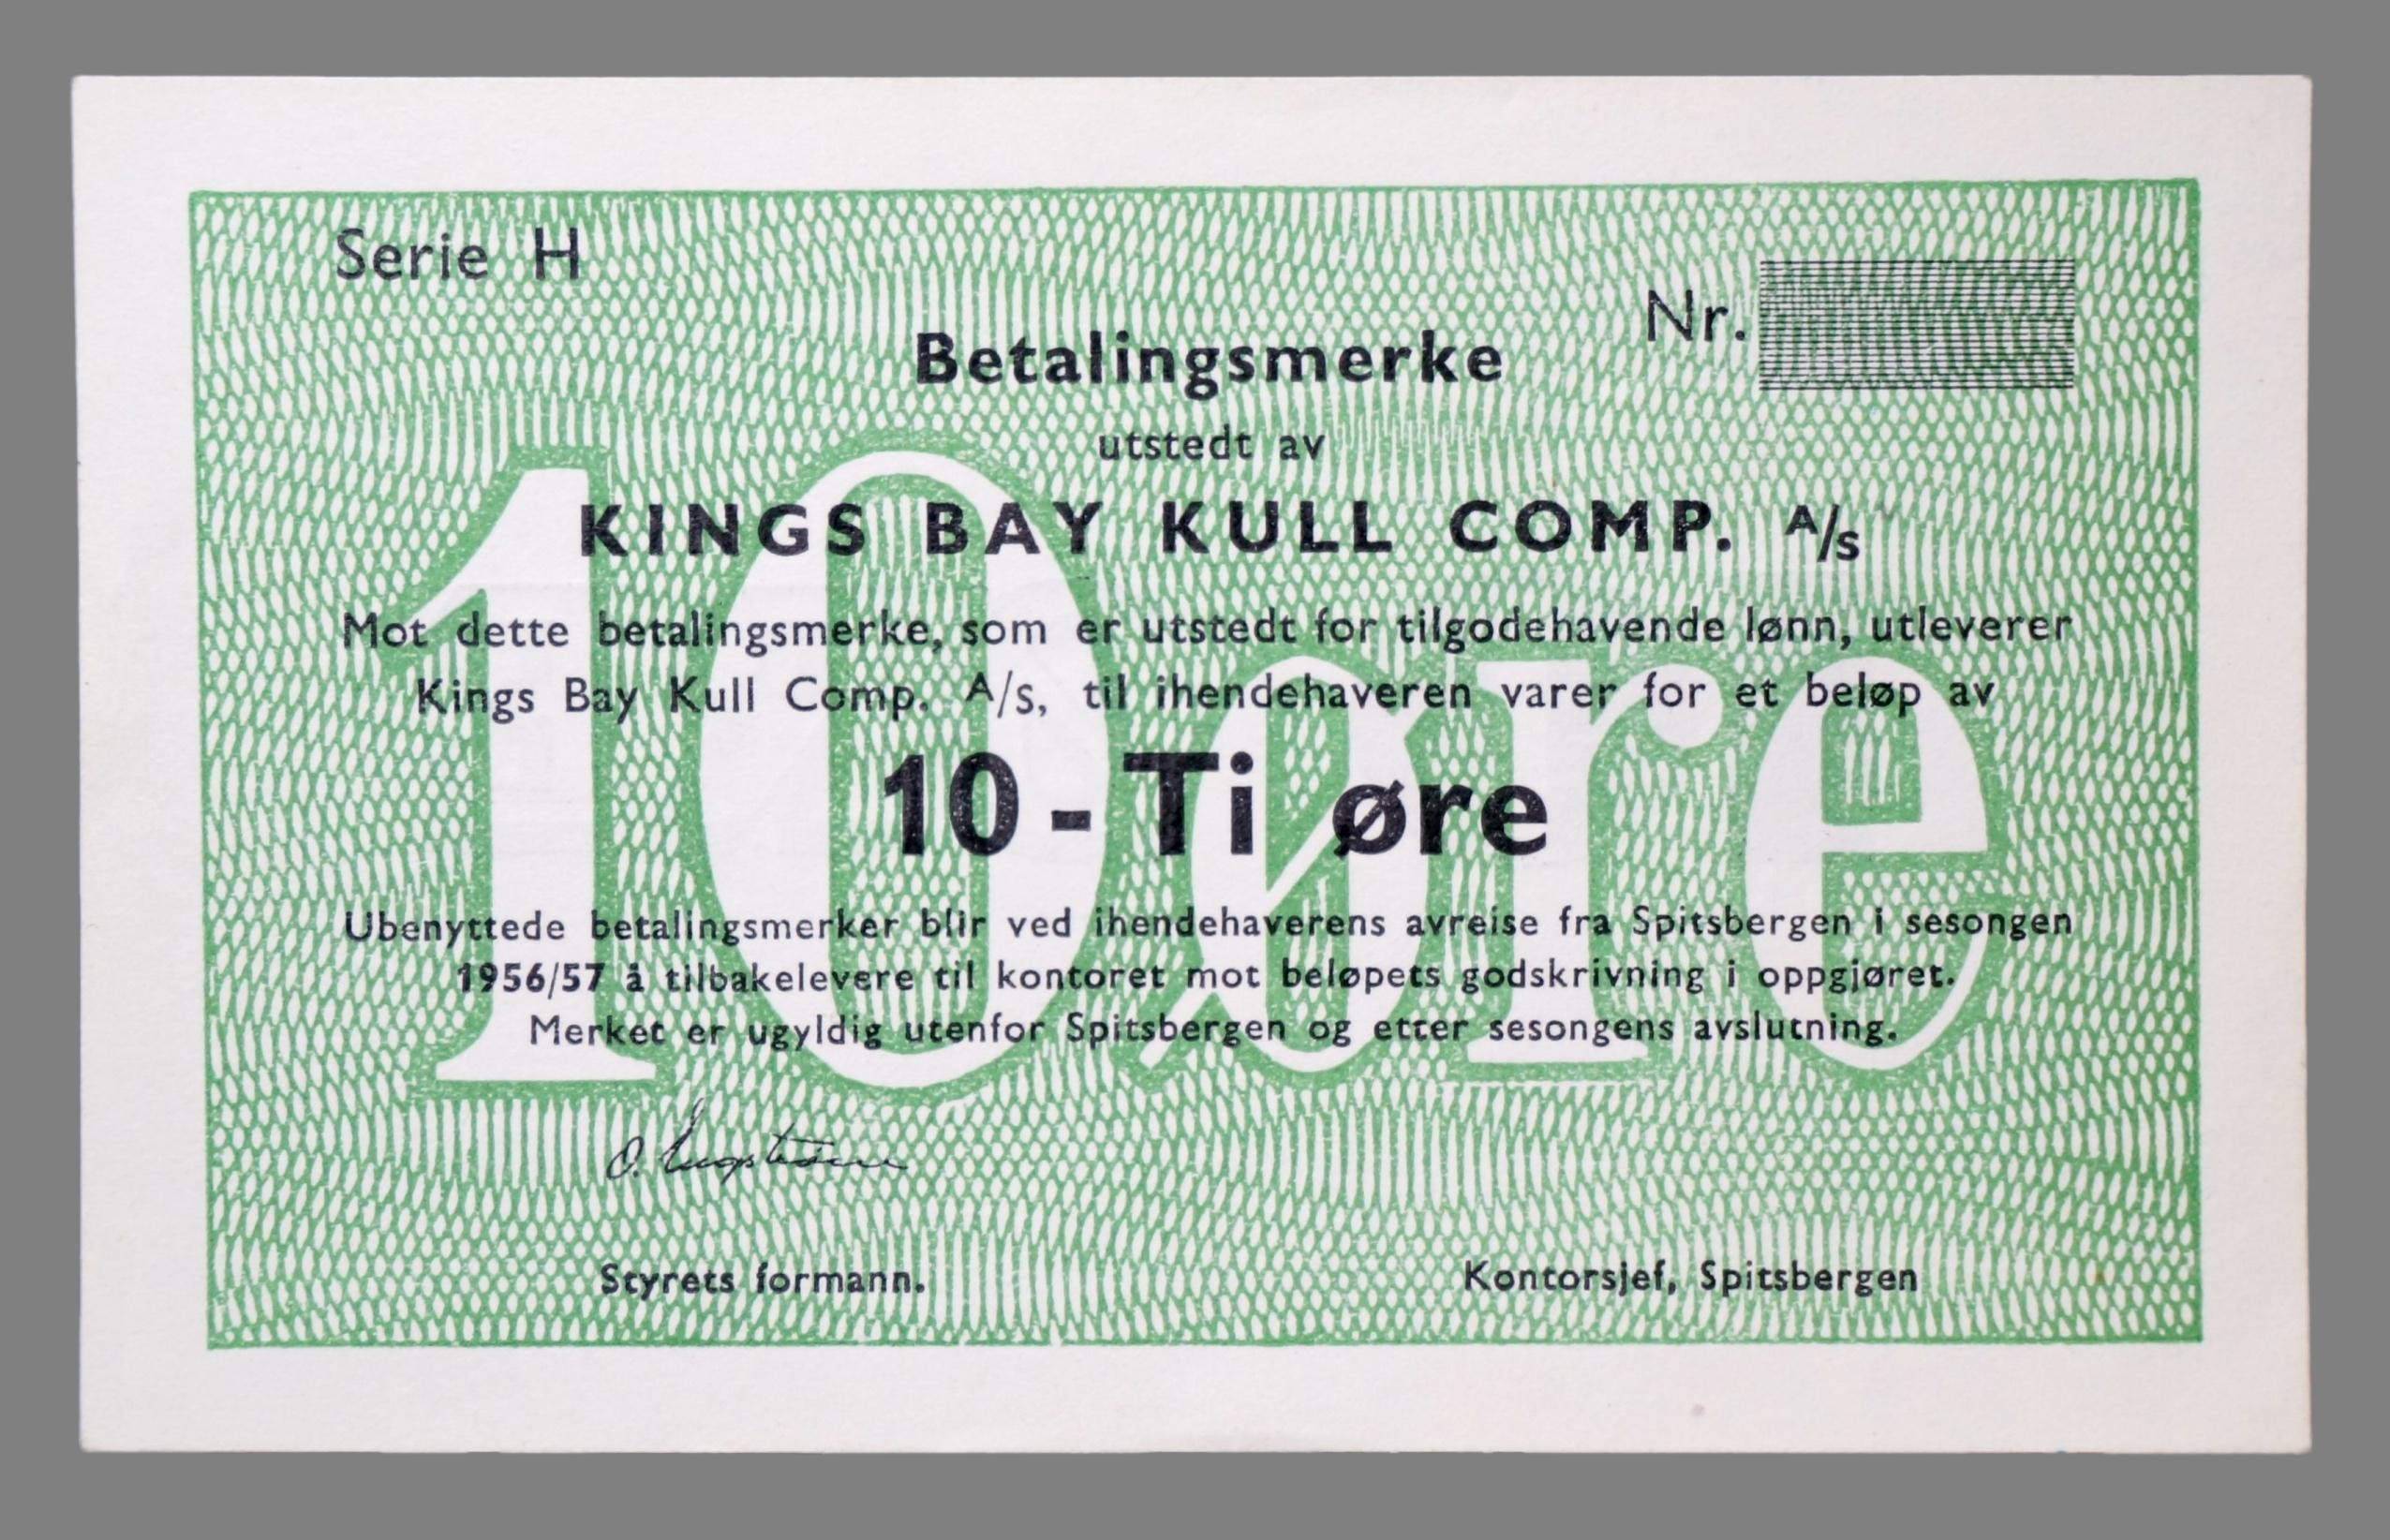 Kings Bay Kull Comp. A/S 10 øre 1956/57